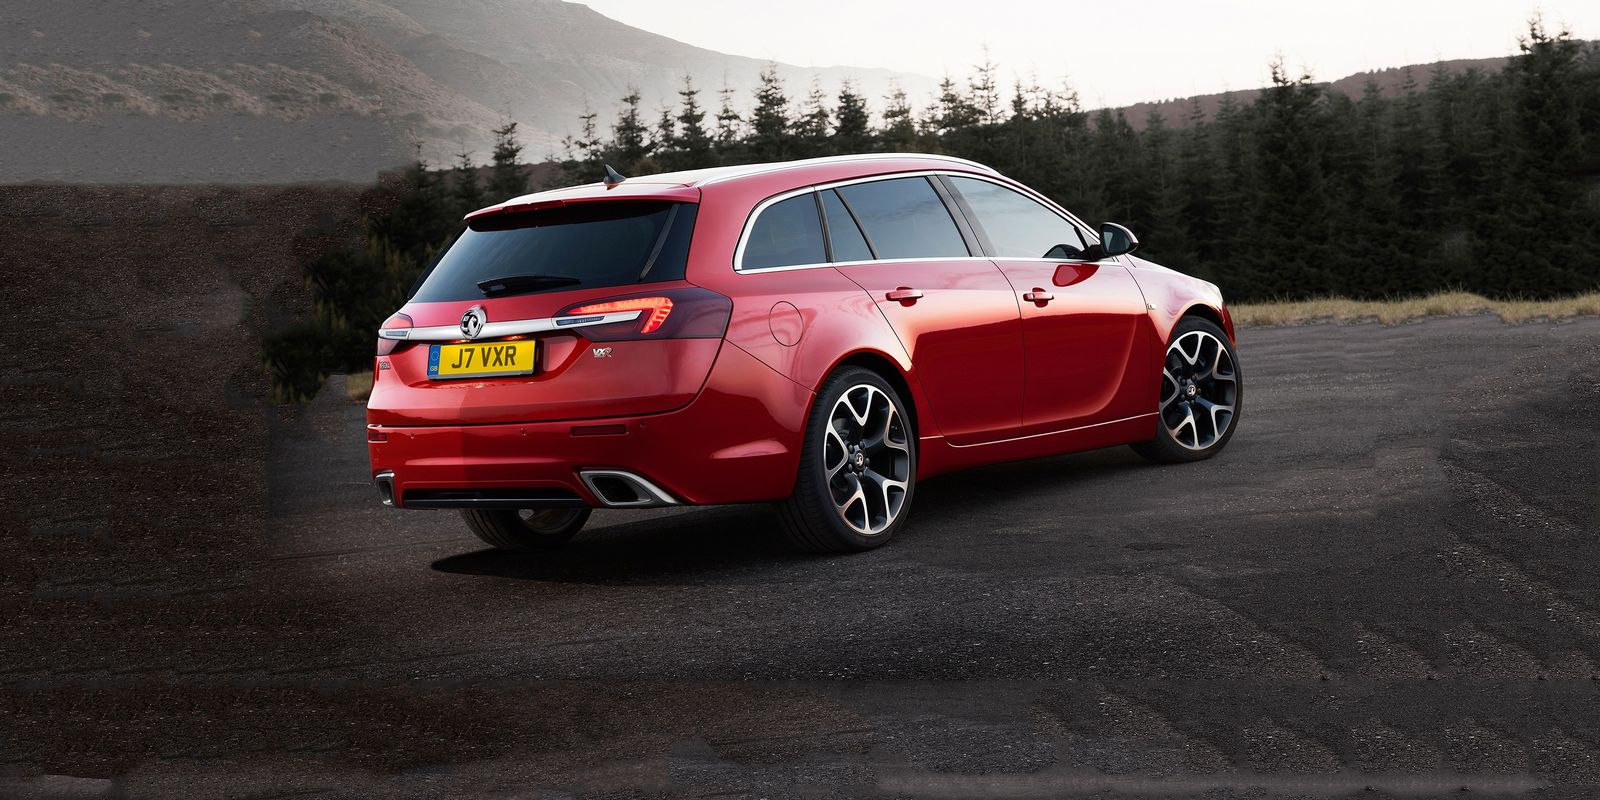 The Insignia VXR is a genuinely powerful car, capable of pulling all the way to 170mph